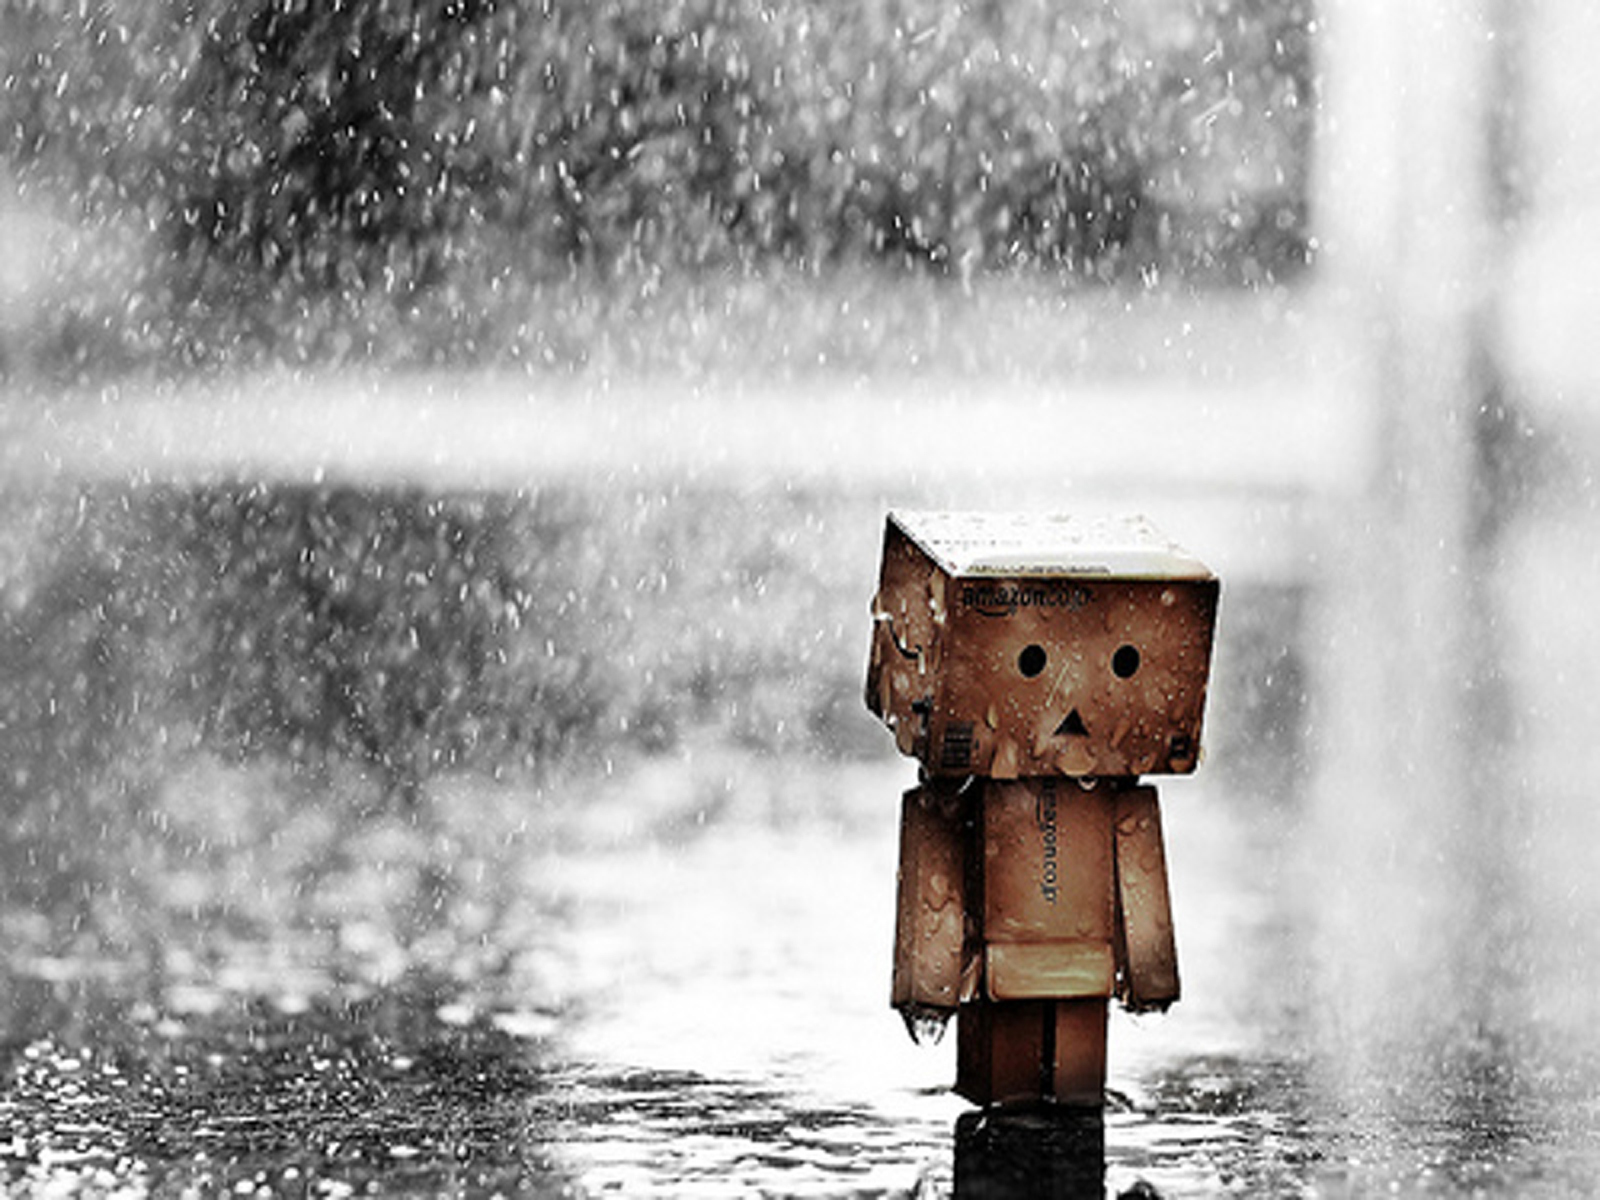 http://up2www.com/uploads/f48528_14danboard-boxman-kutu-adam-rain-cry-w%D8%B2ww-vvallpaper-net.jpg